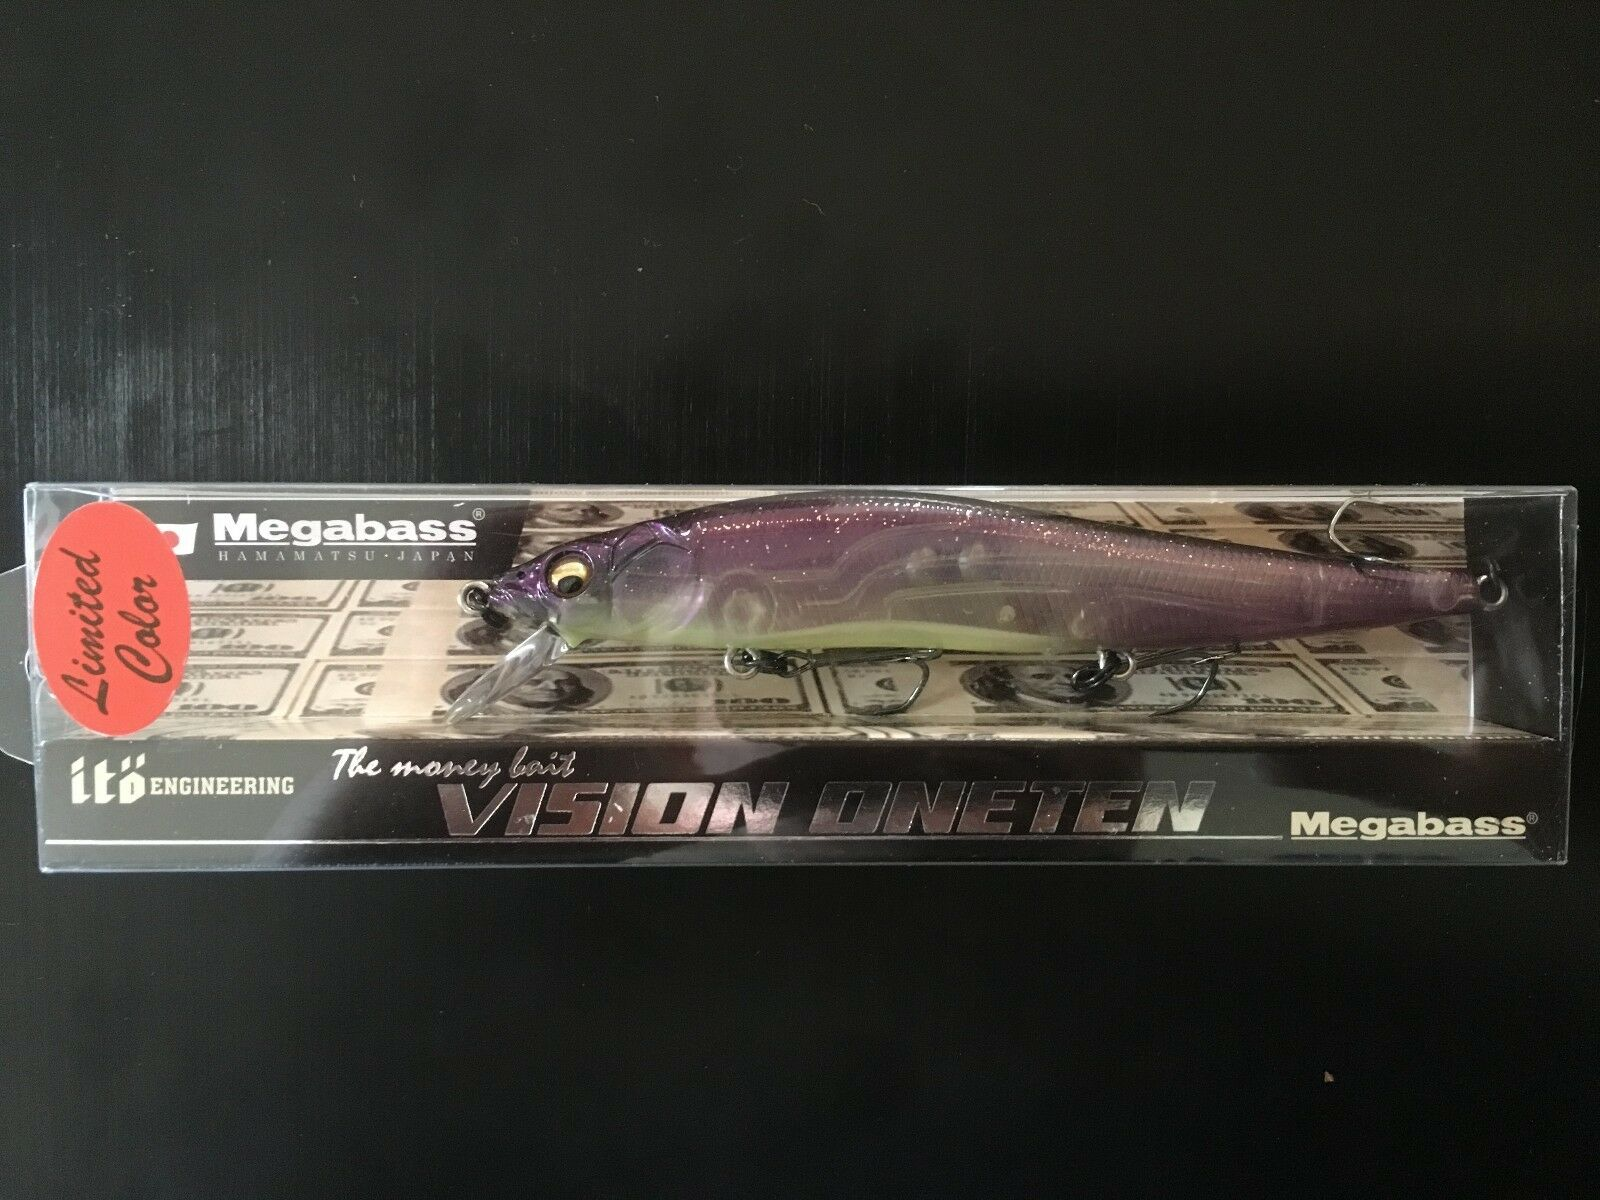 Megabass Ito Vision ONETEN 110 EZO Iwana Premium Limited Color for 1600x1200